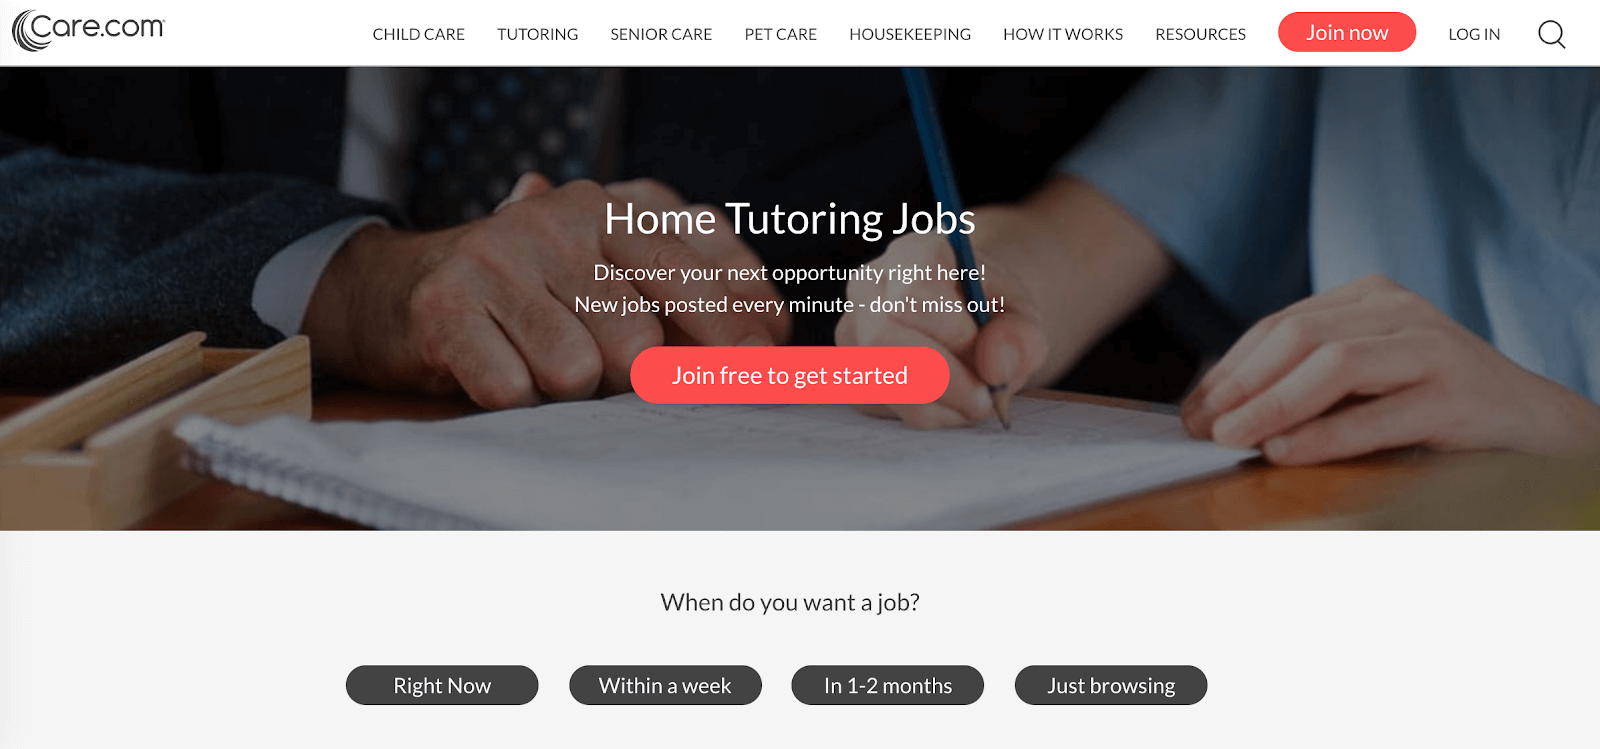 What You Need to Know About the Care.com Tutor Service